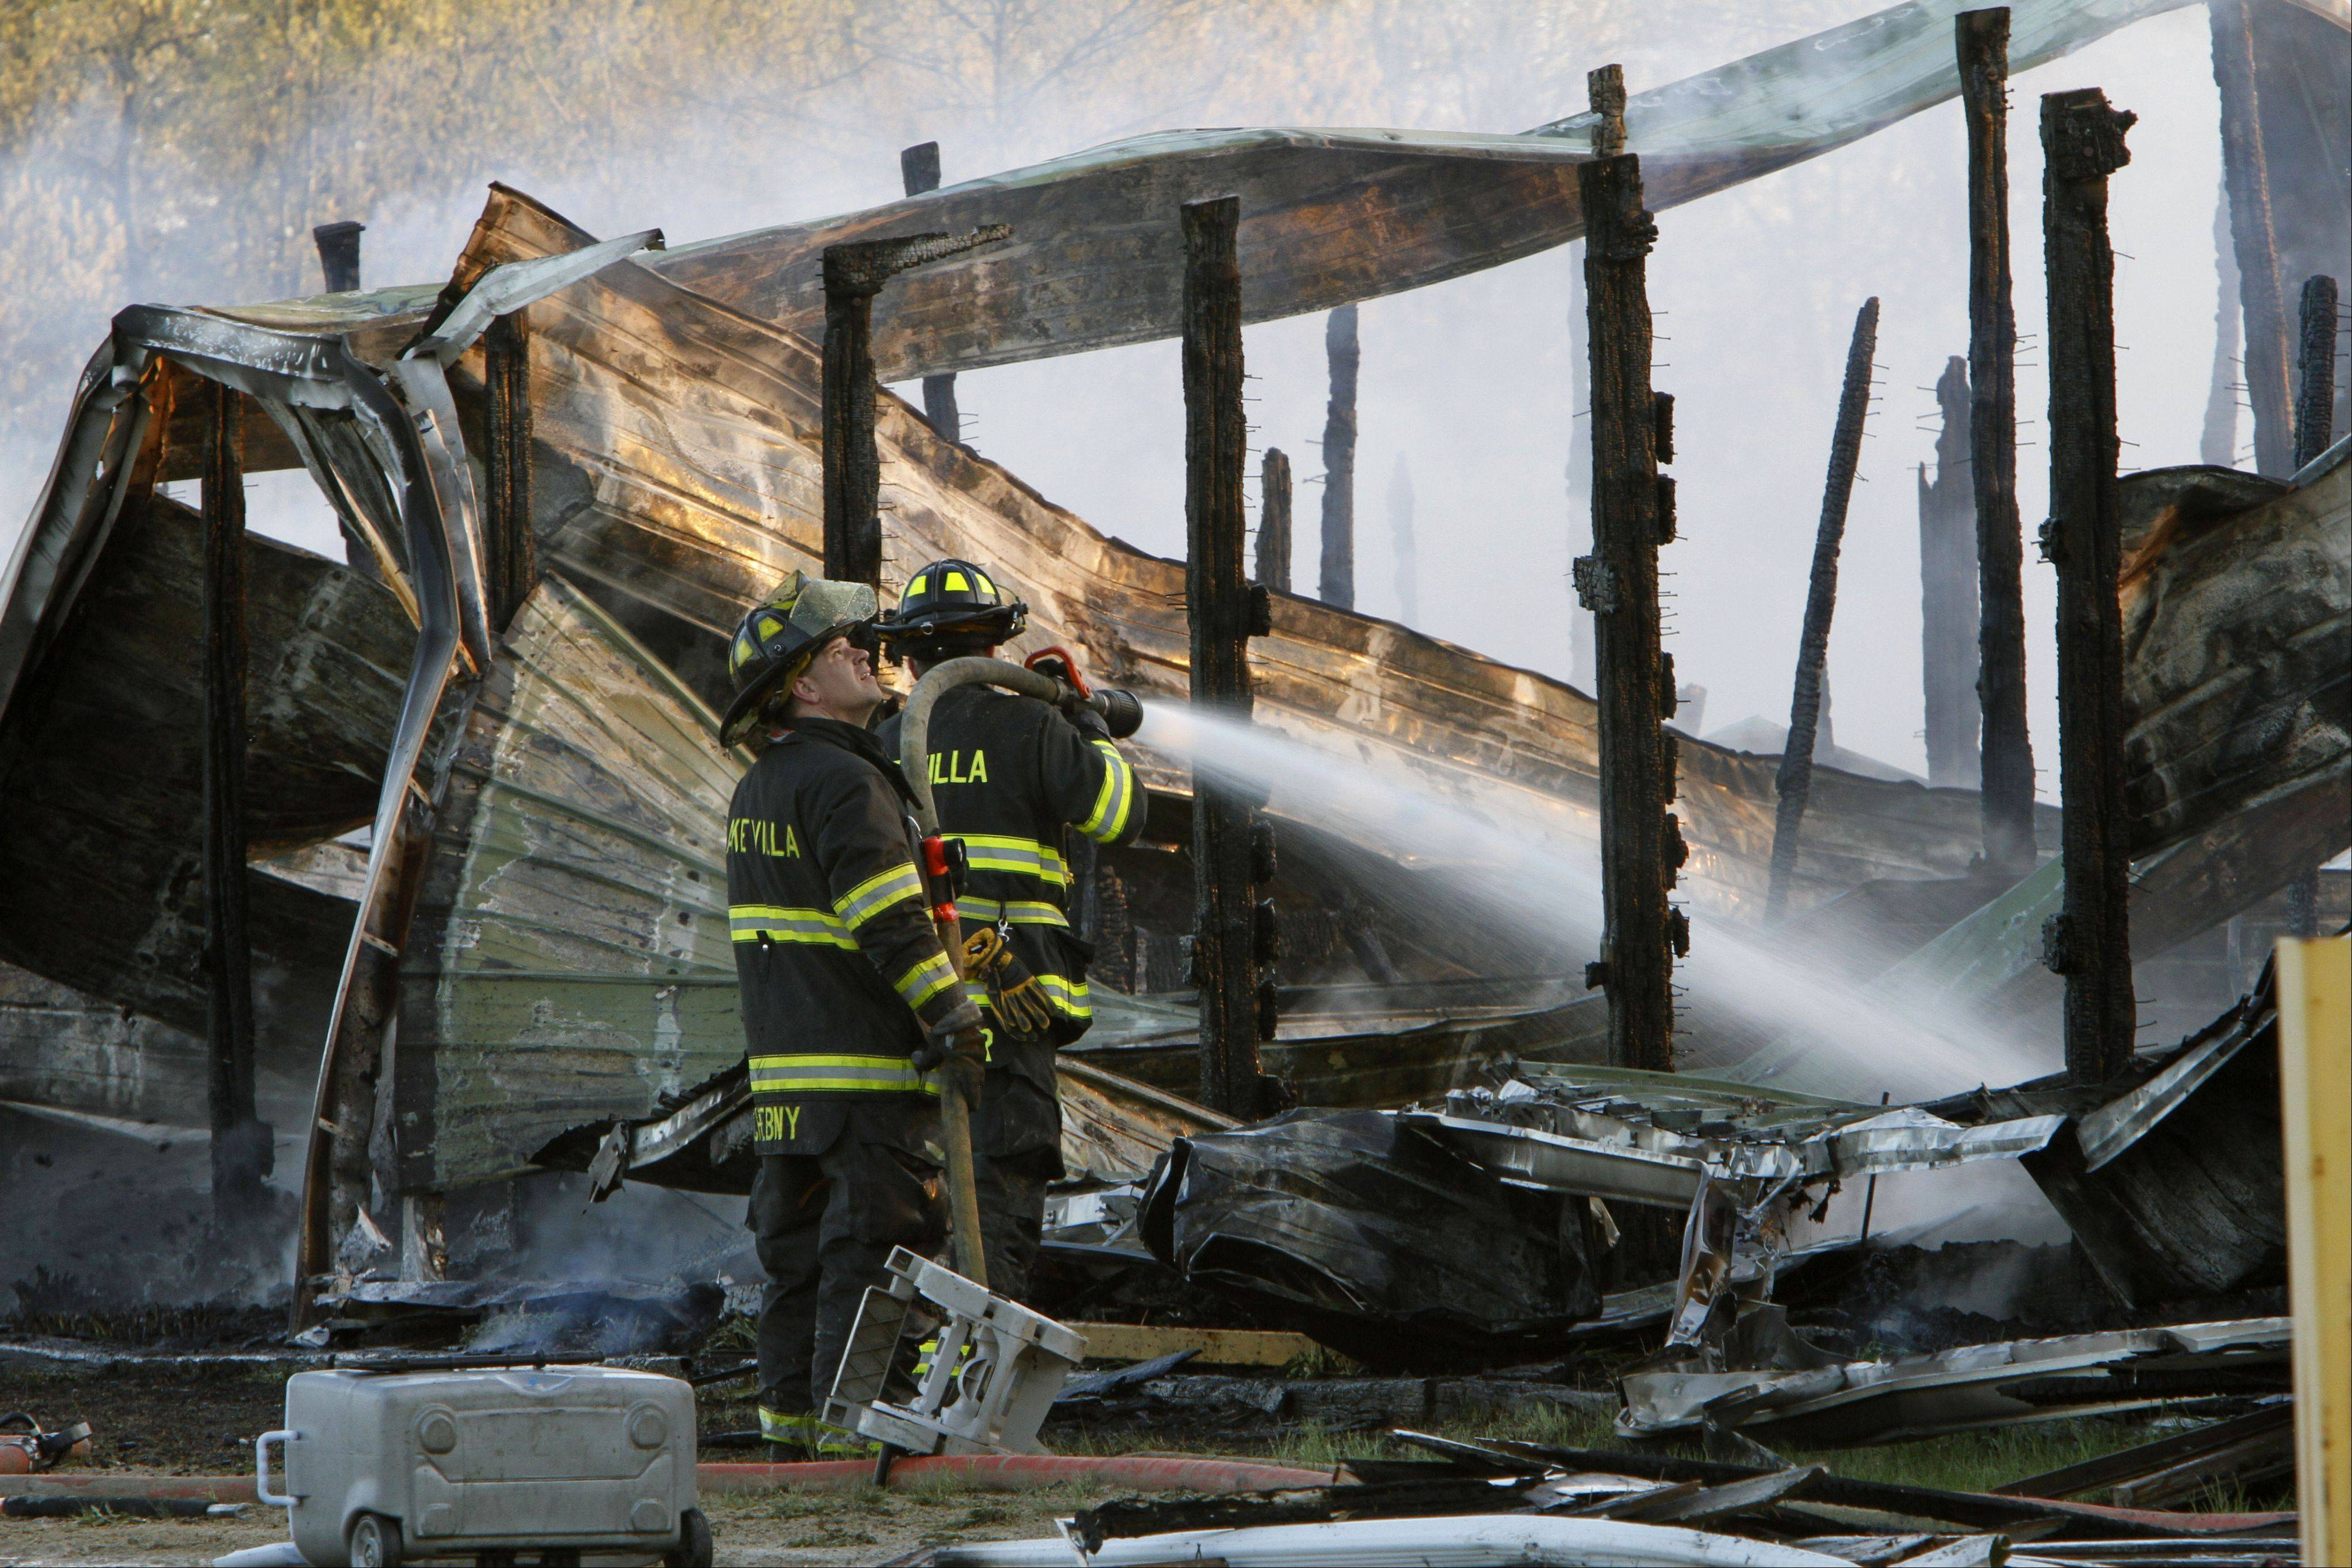 Lake Villa firefighters work to extinguish a fire at Black Tie Stable in McHenry Wednesday evening. The five-alarm fire destroyed the facility. Fire companies from throughout the area were on hand to help.